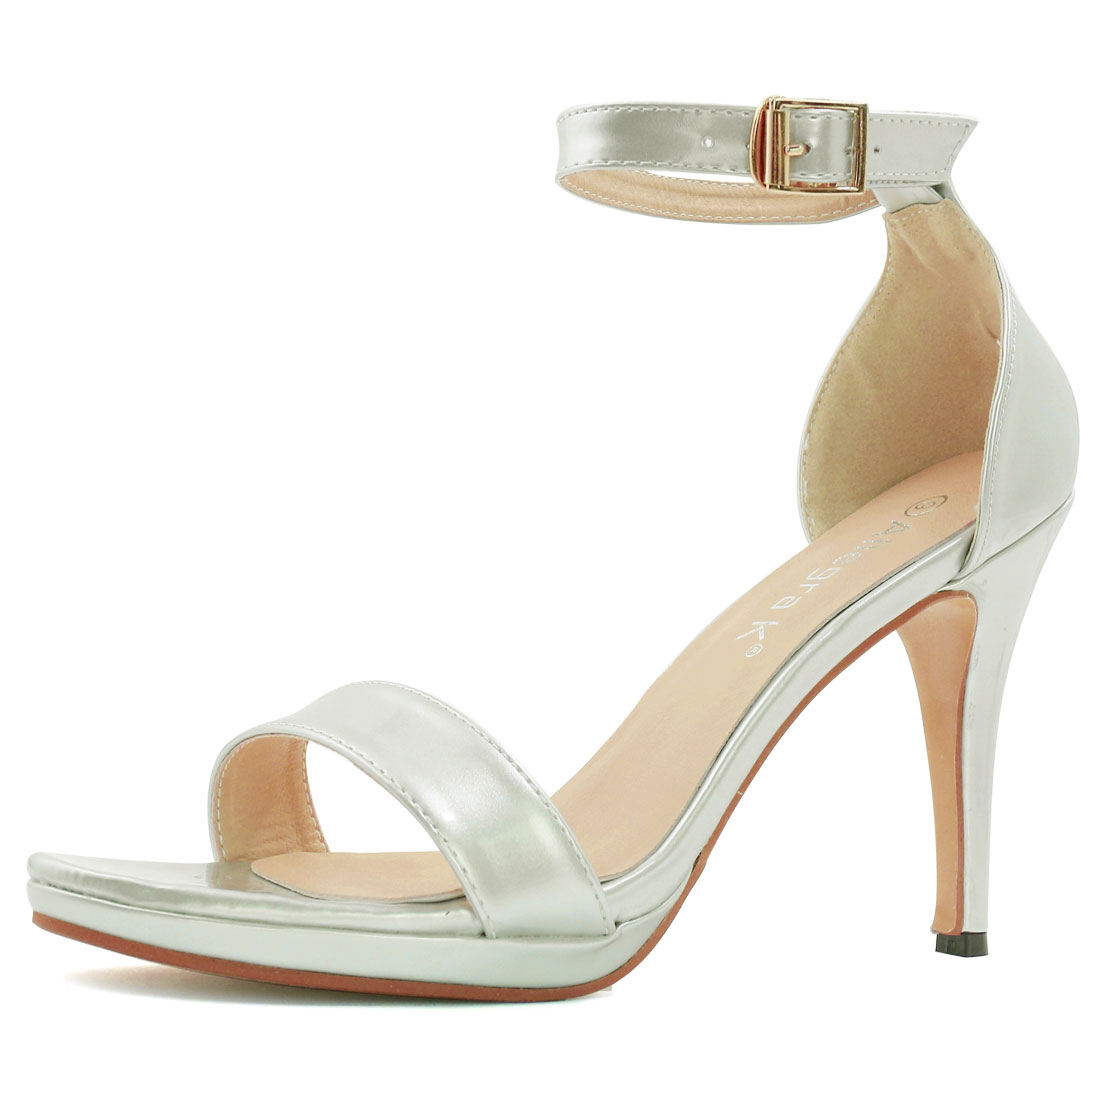 Woman Open Toe High Heel Metallic Ankle Strap Sandals Silver US 9